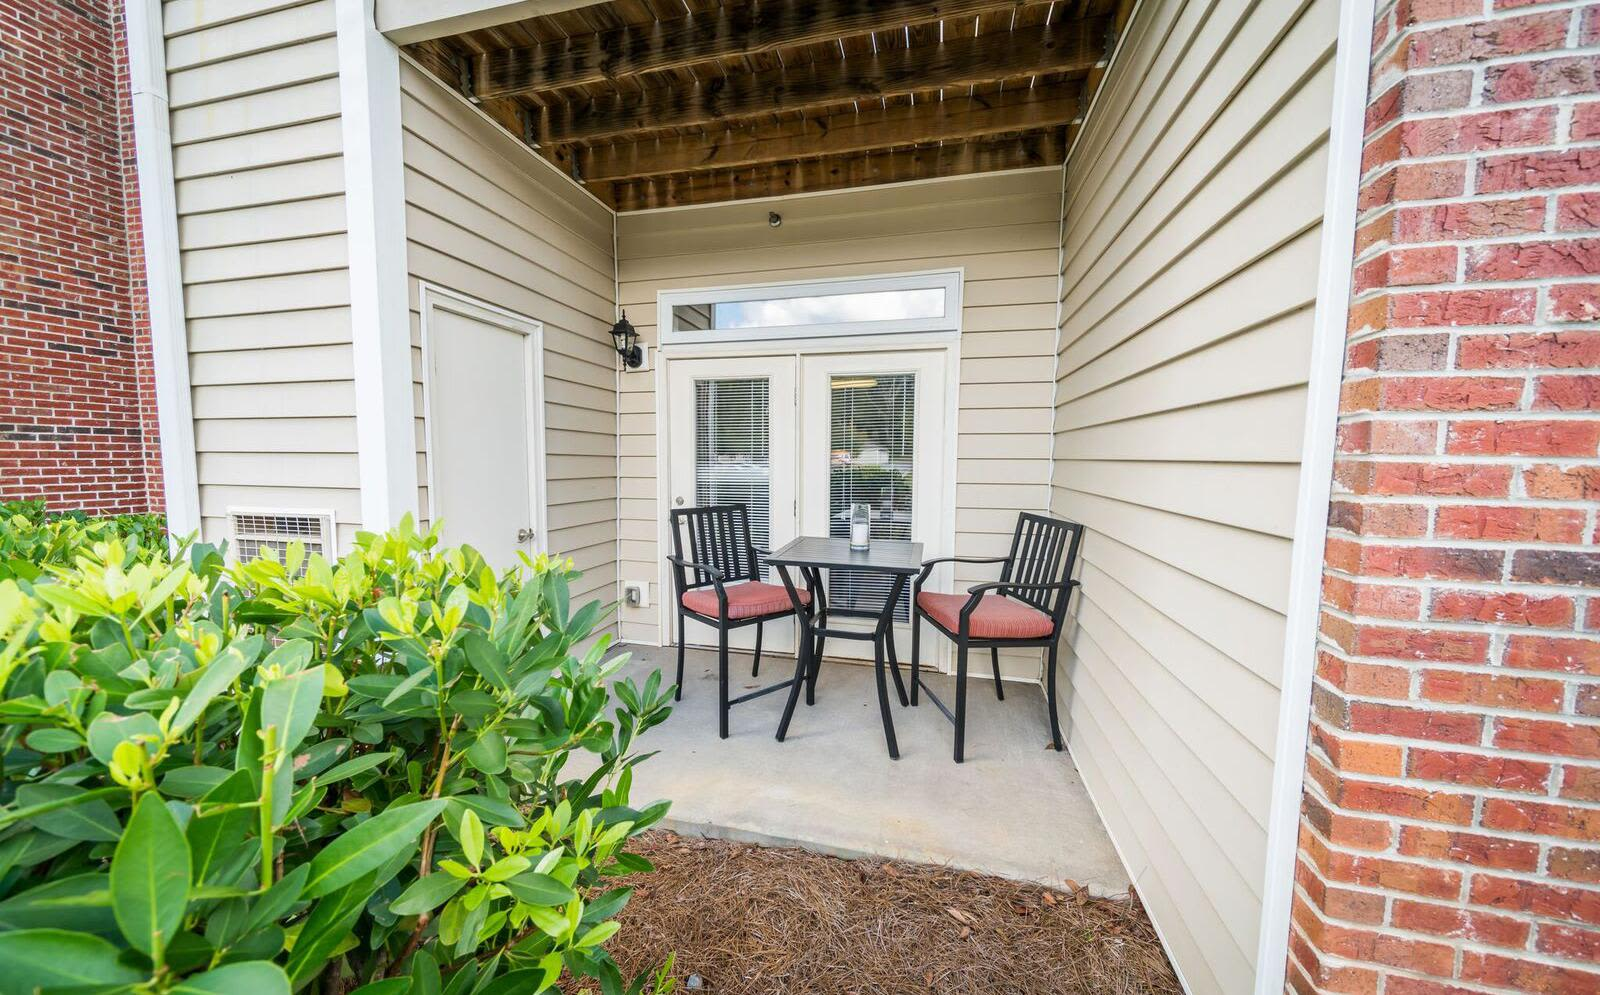 Private patio at Pavilion at Plantation Way apartments in Macon, Georgia